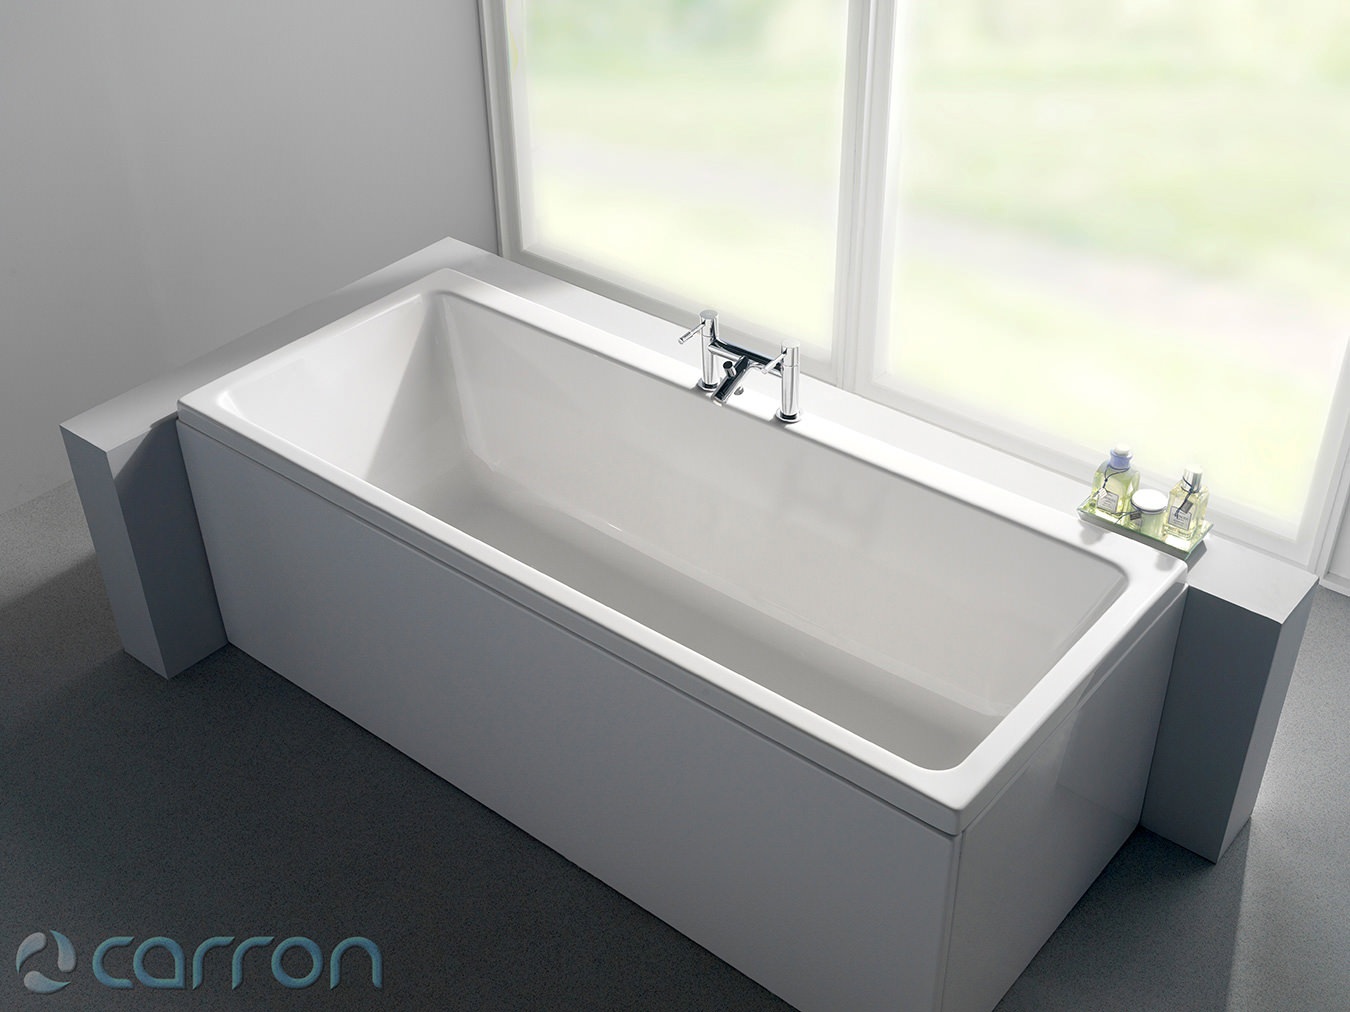 Carron Quantum Double Ended Acrylic Bath 1700 x 700mm  Q4